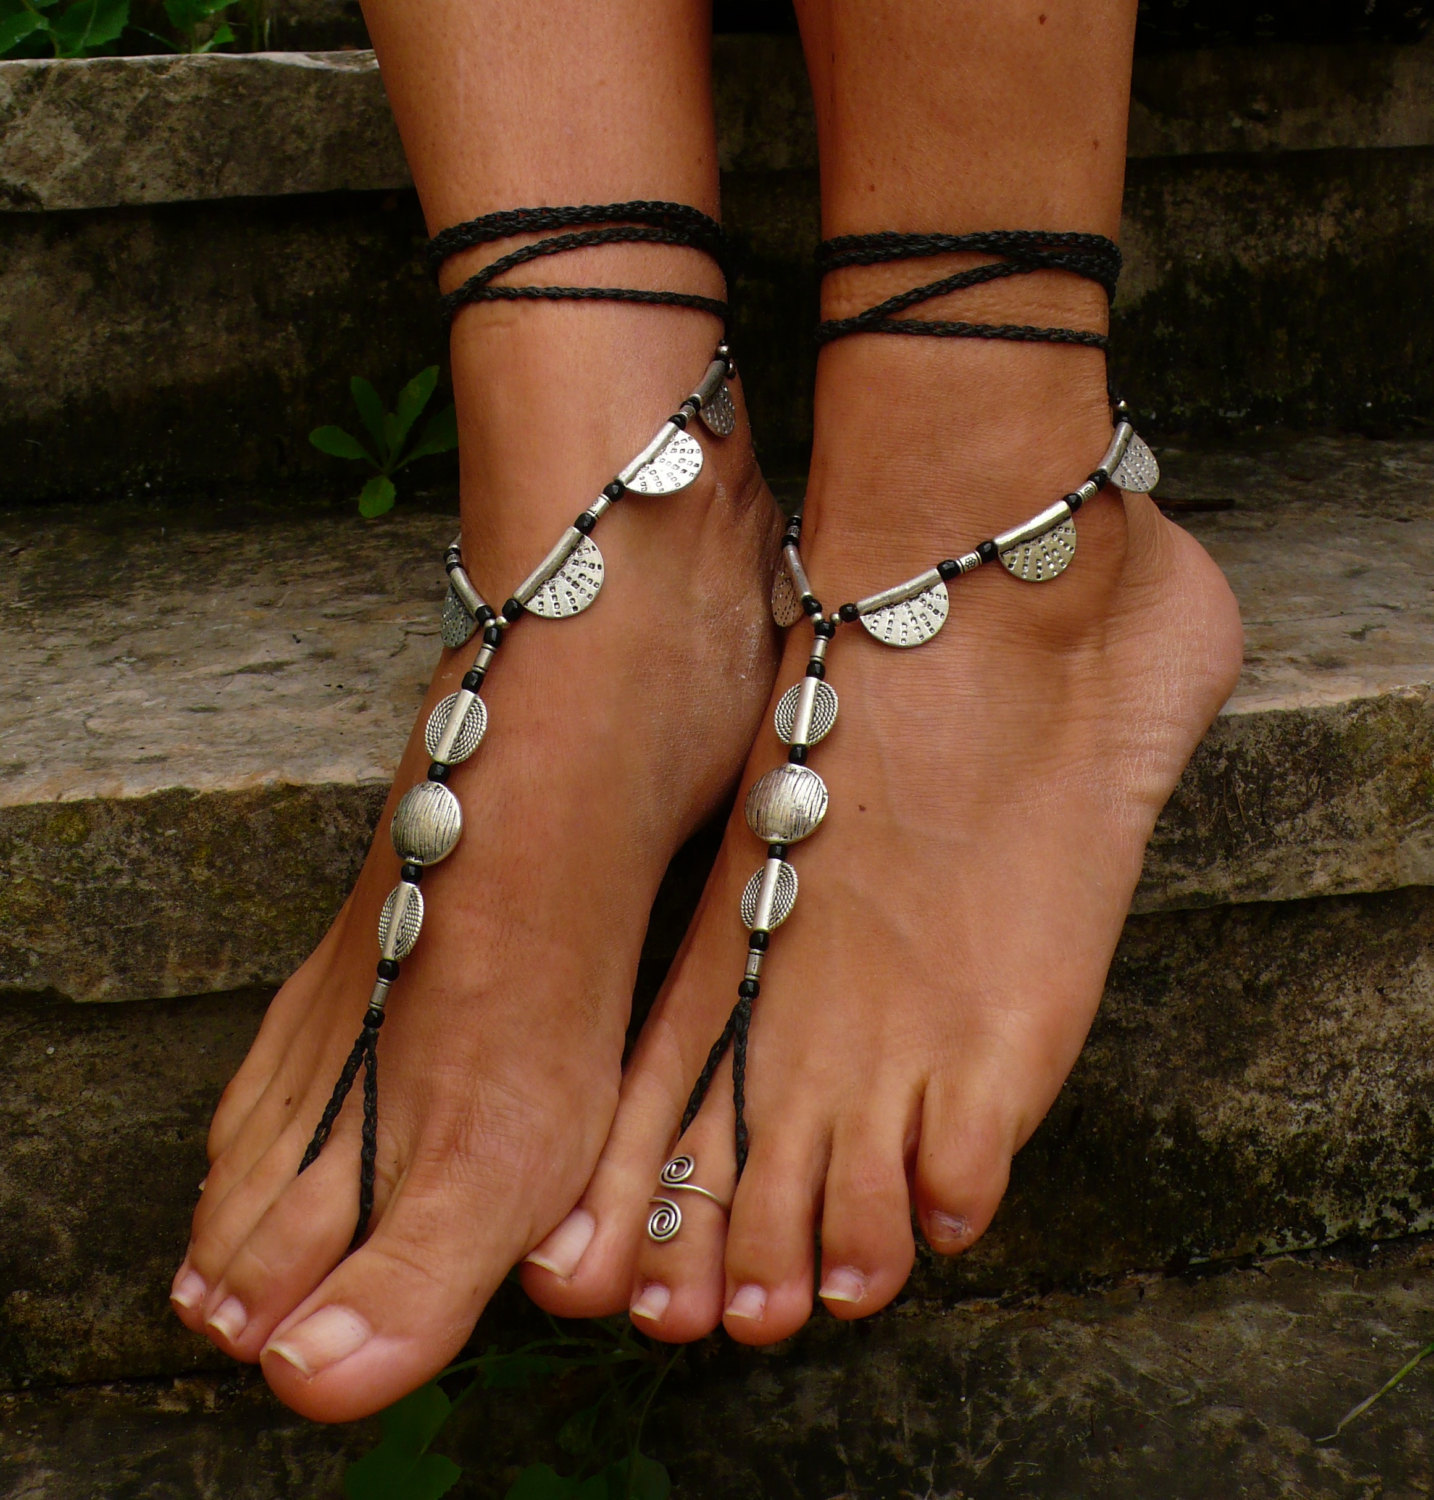 8b1d2d54d Il fullxfull.685756014 hnrb. Il fullxfull.685756014 hnrb. Previous. Black  and Silver ETHNIC BAREFOOT SANDALS foot jewelry hippie sandals toe anklet